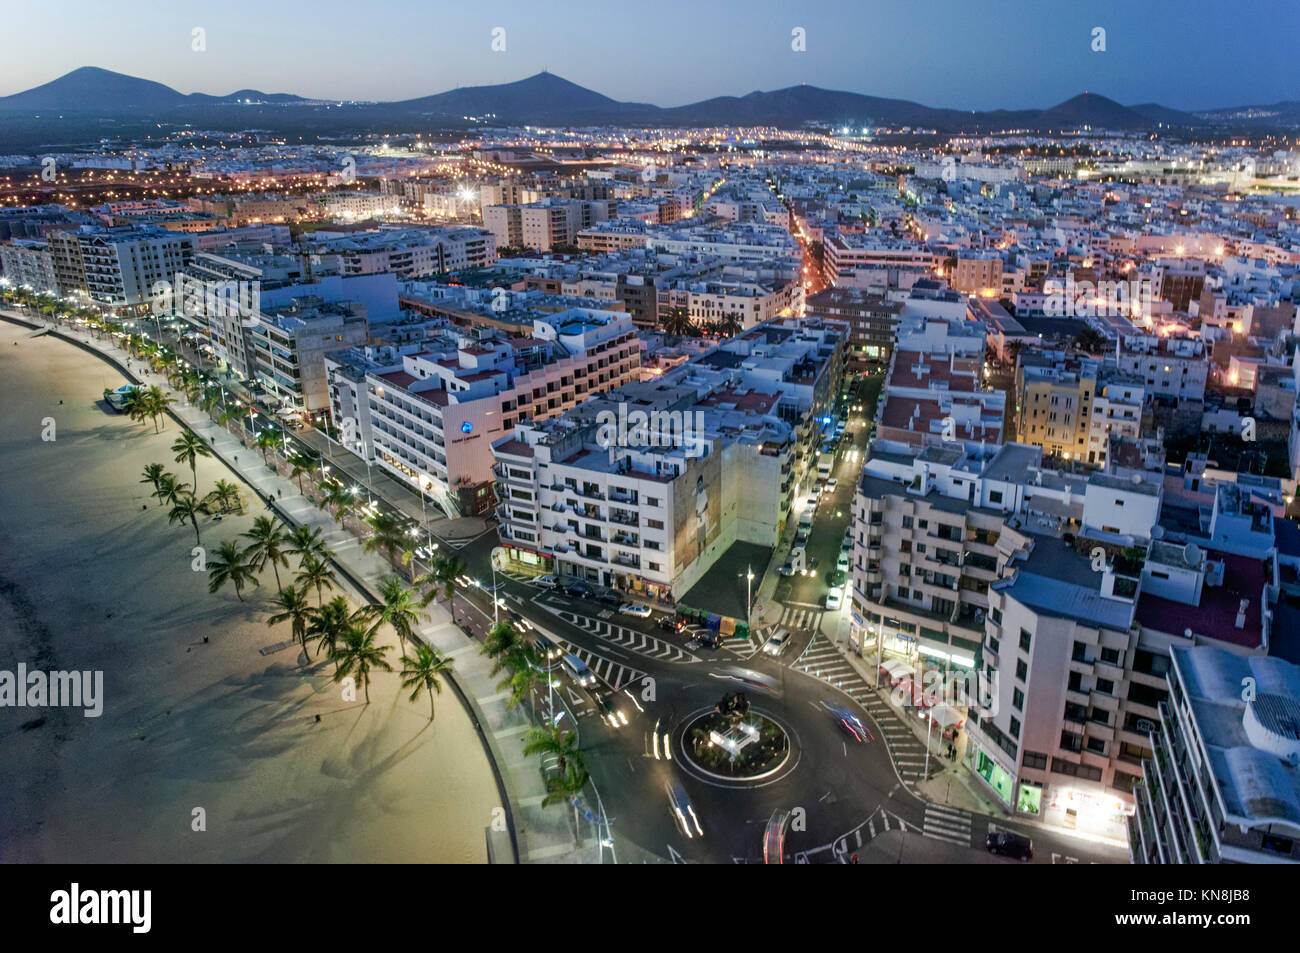 Arrecife, Arial View at twilight, Lanzarote, Canary Islands, Spain - Stock Image